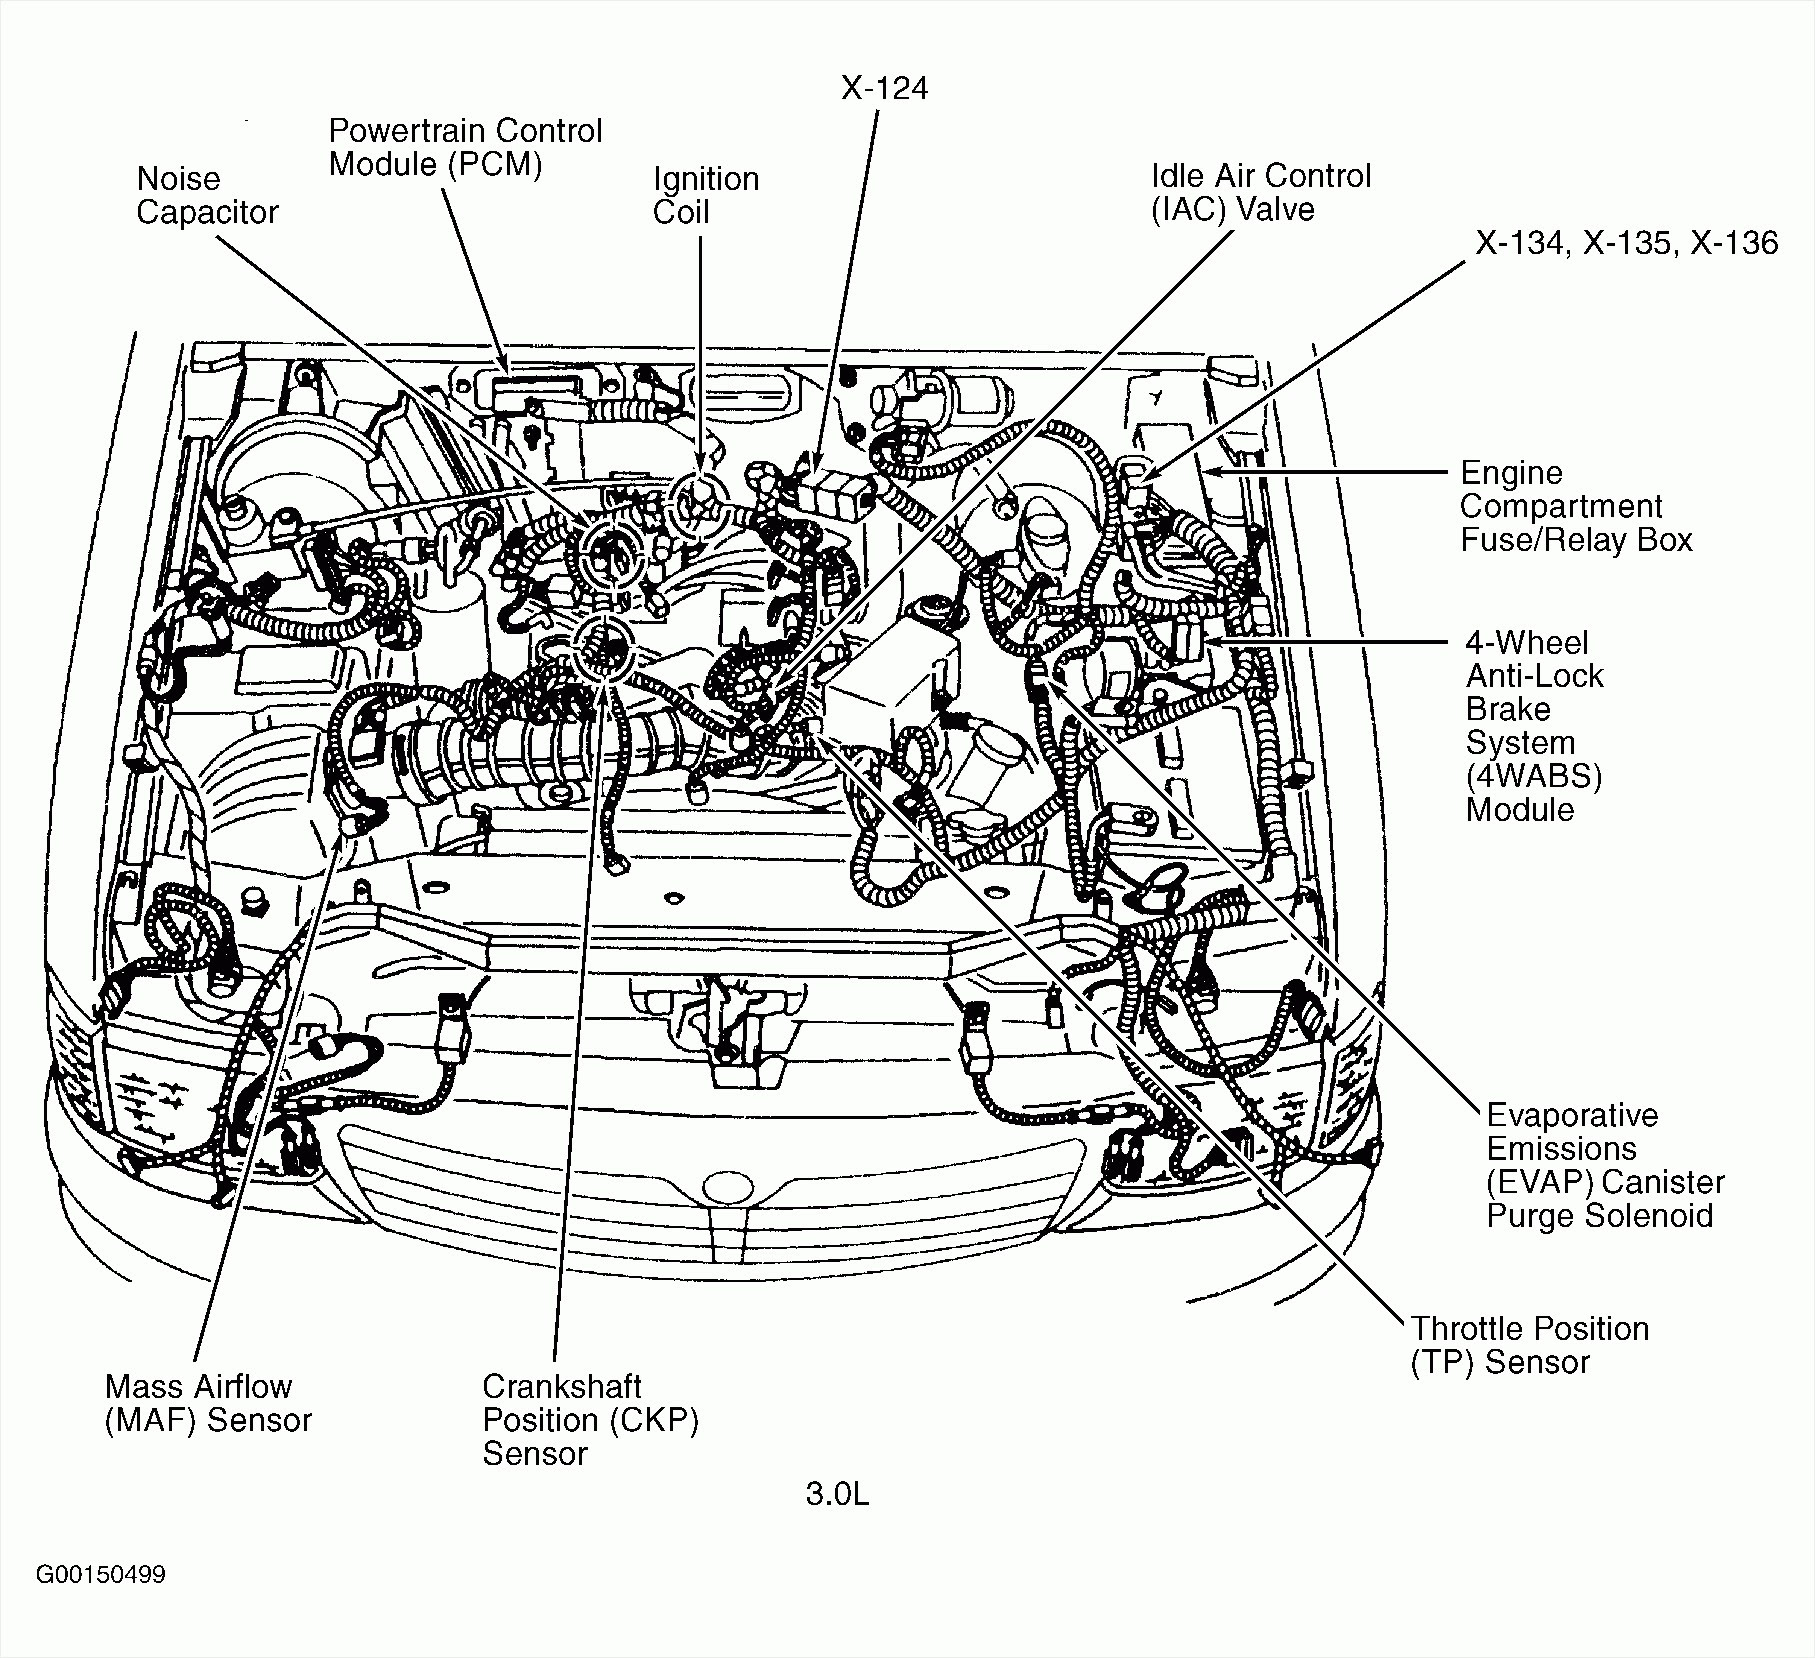 2000 Mazda Mpv Engine Diagram Wiring Diagram Improve Improve Valhallarestaurant It